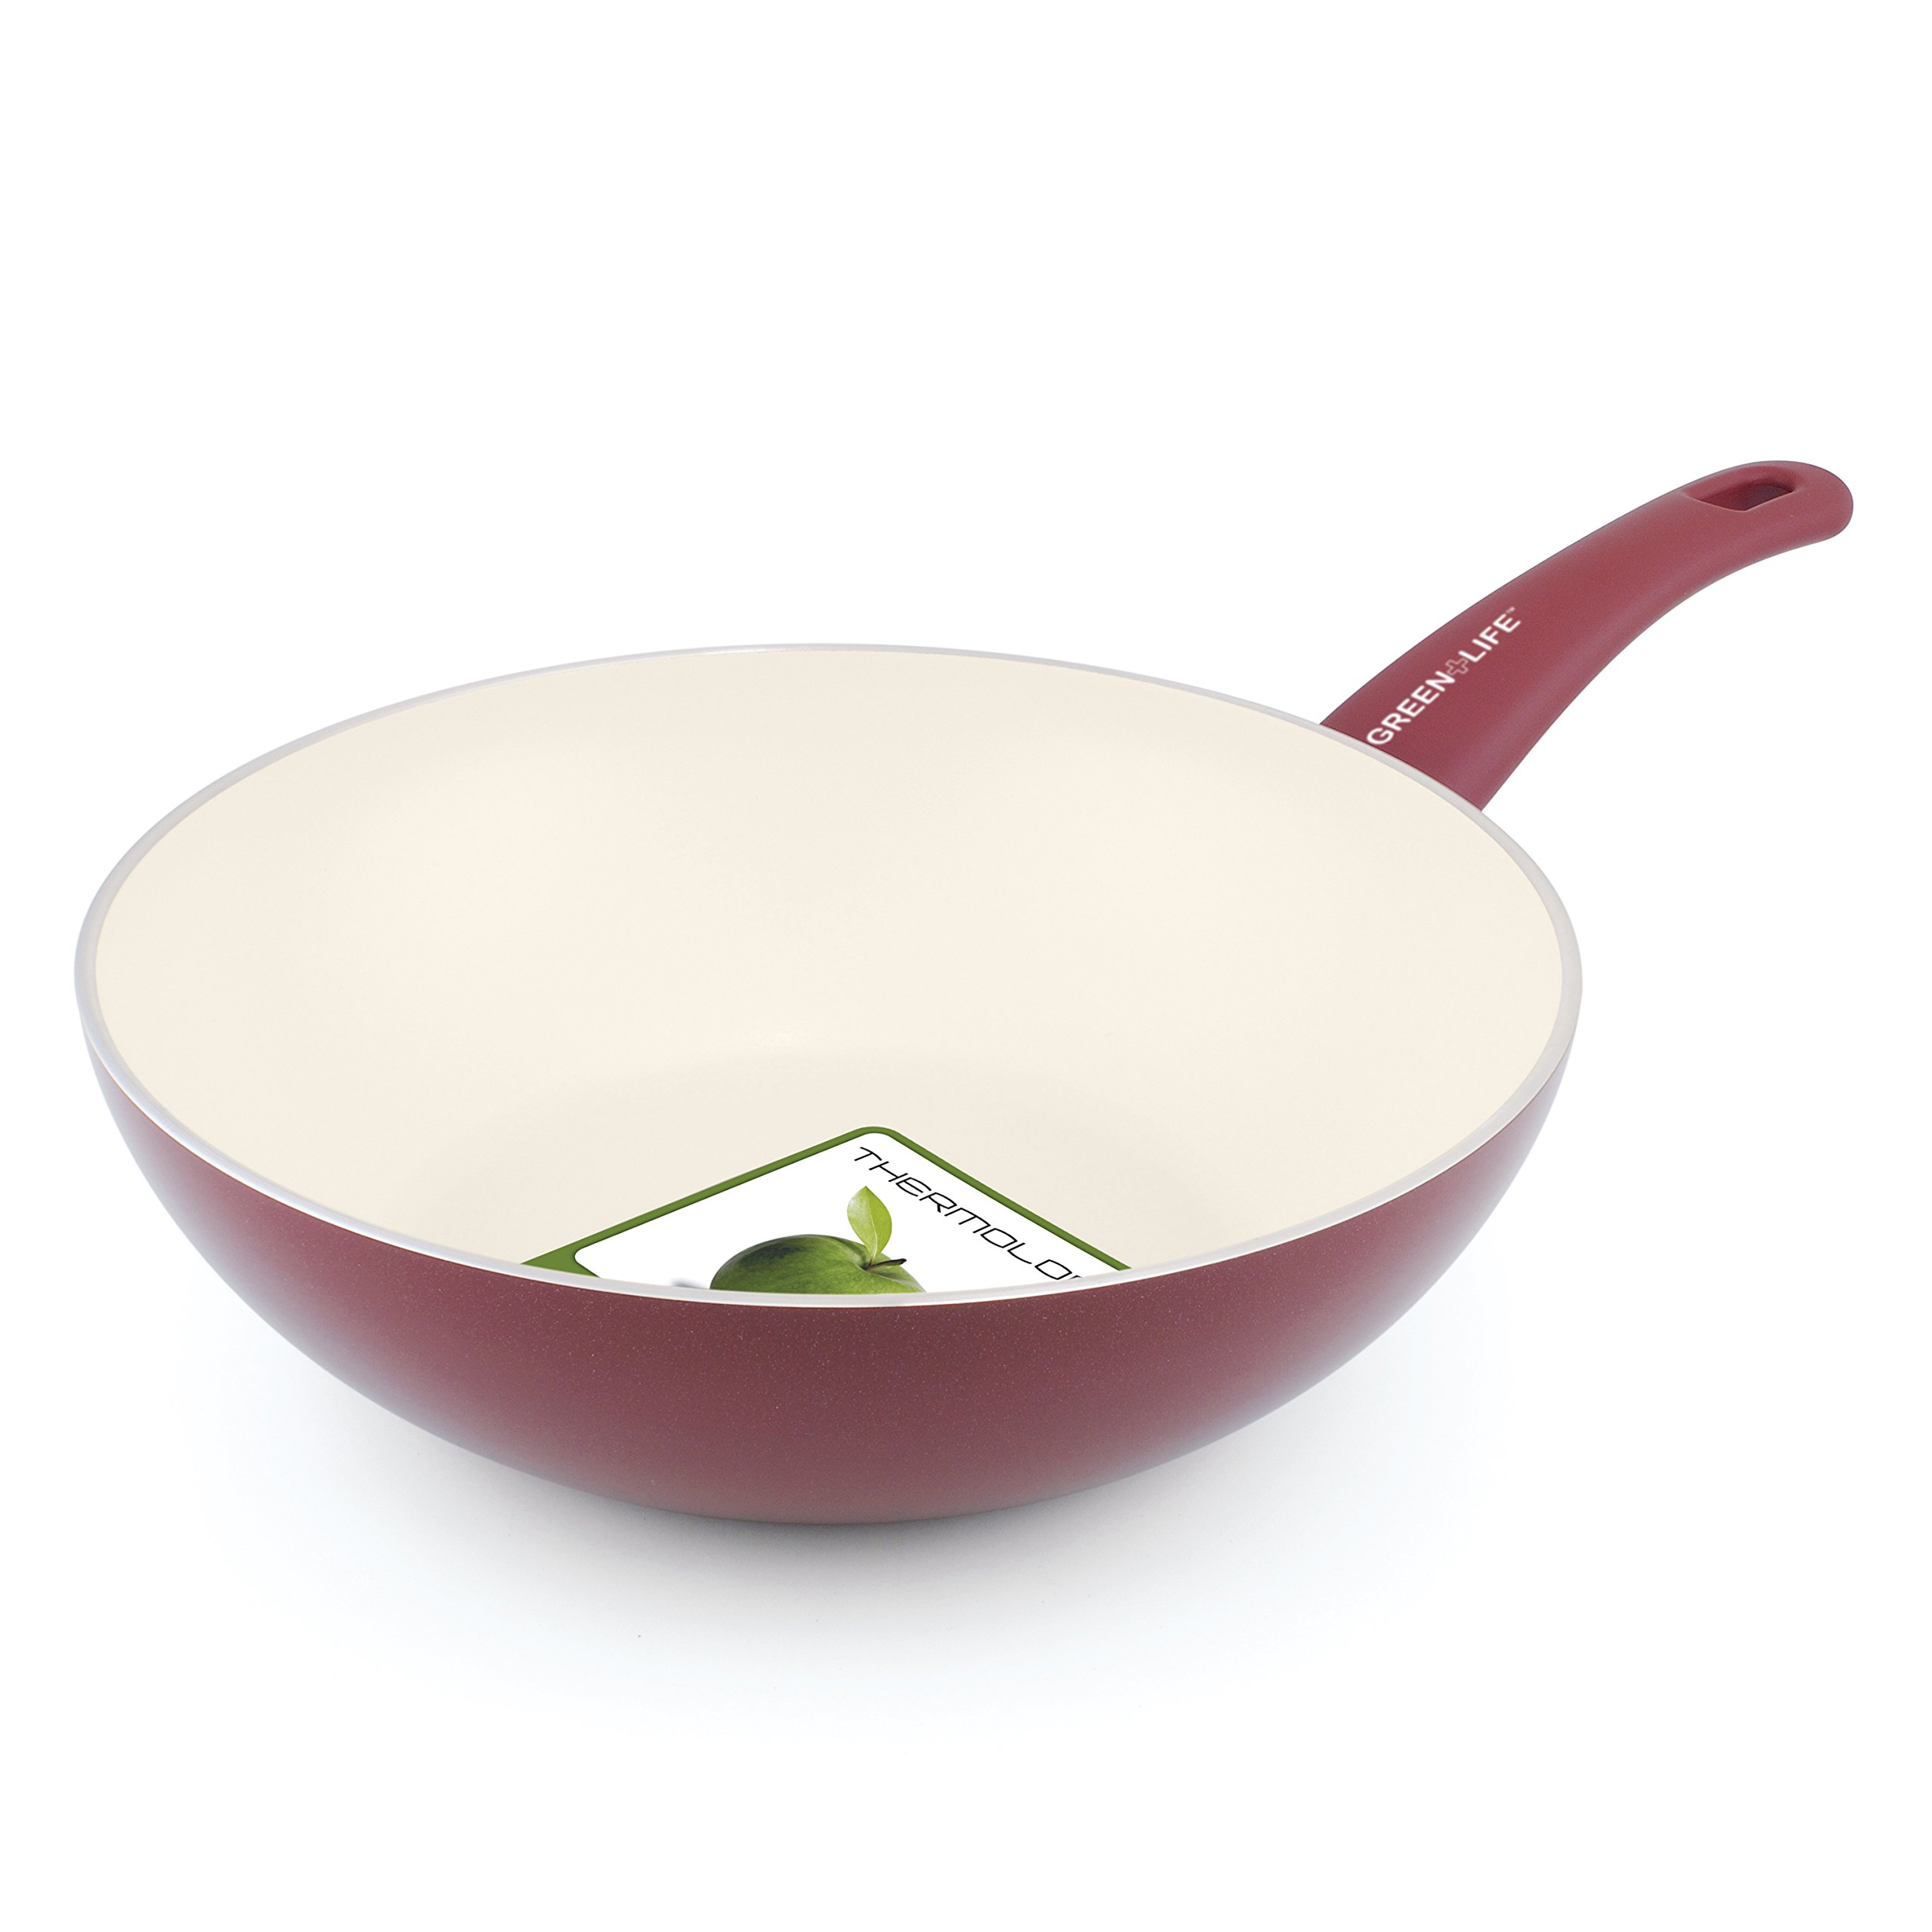 GreenLife Soft Grip 11'' Ceramic Non-Stick Open Wok, Burgundy